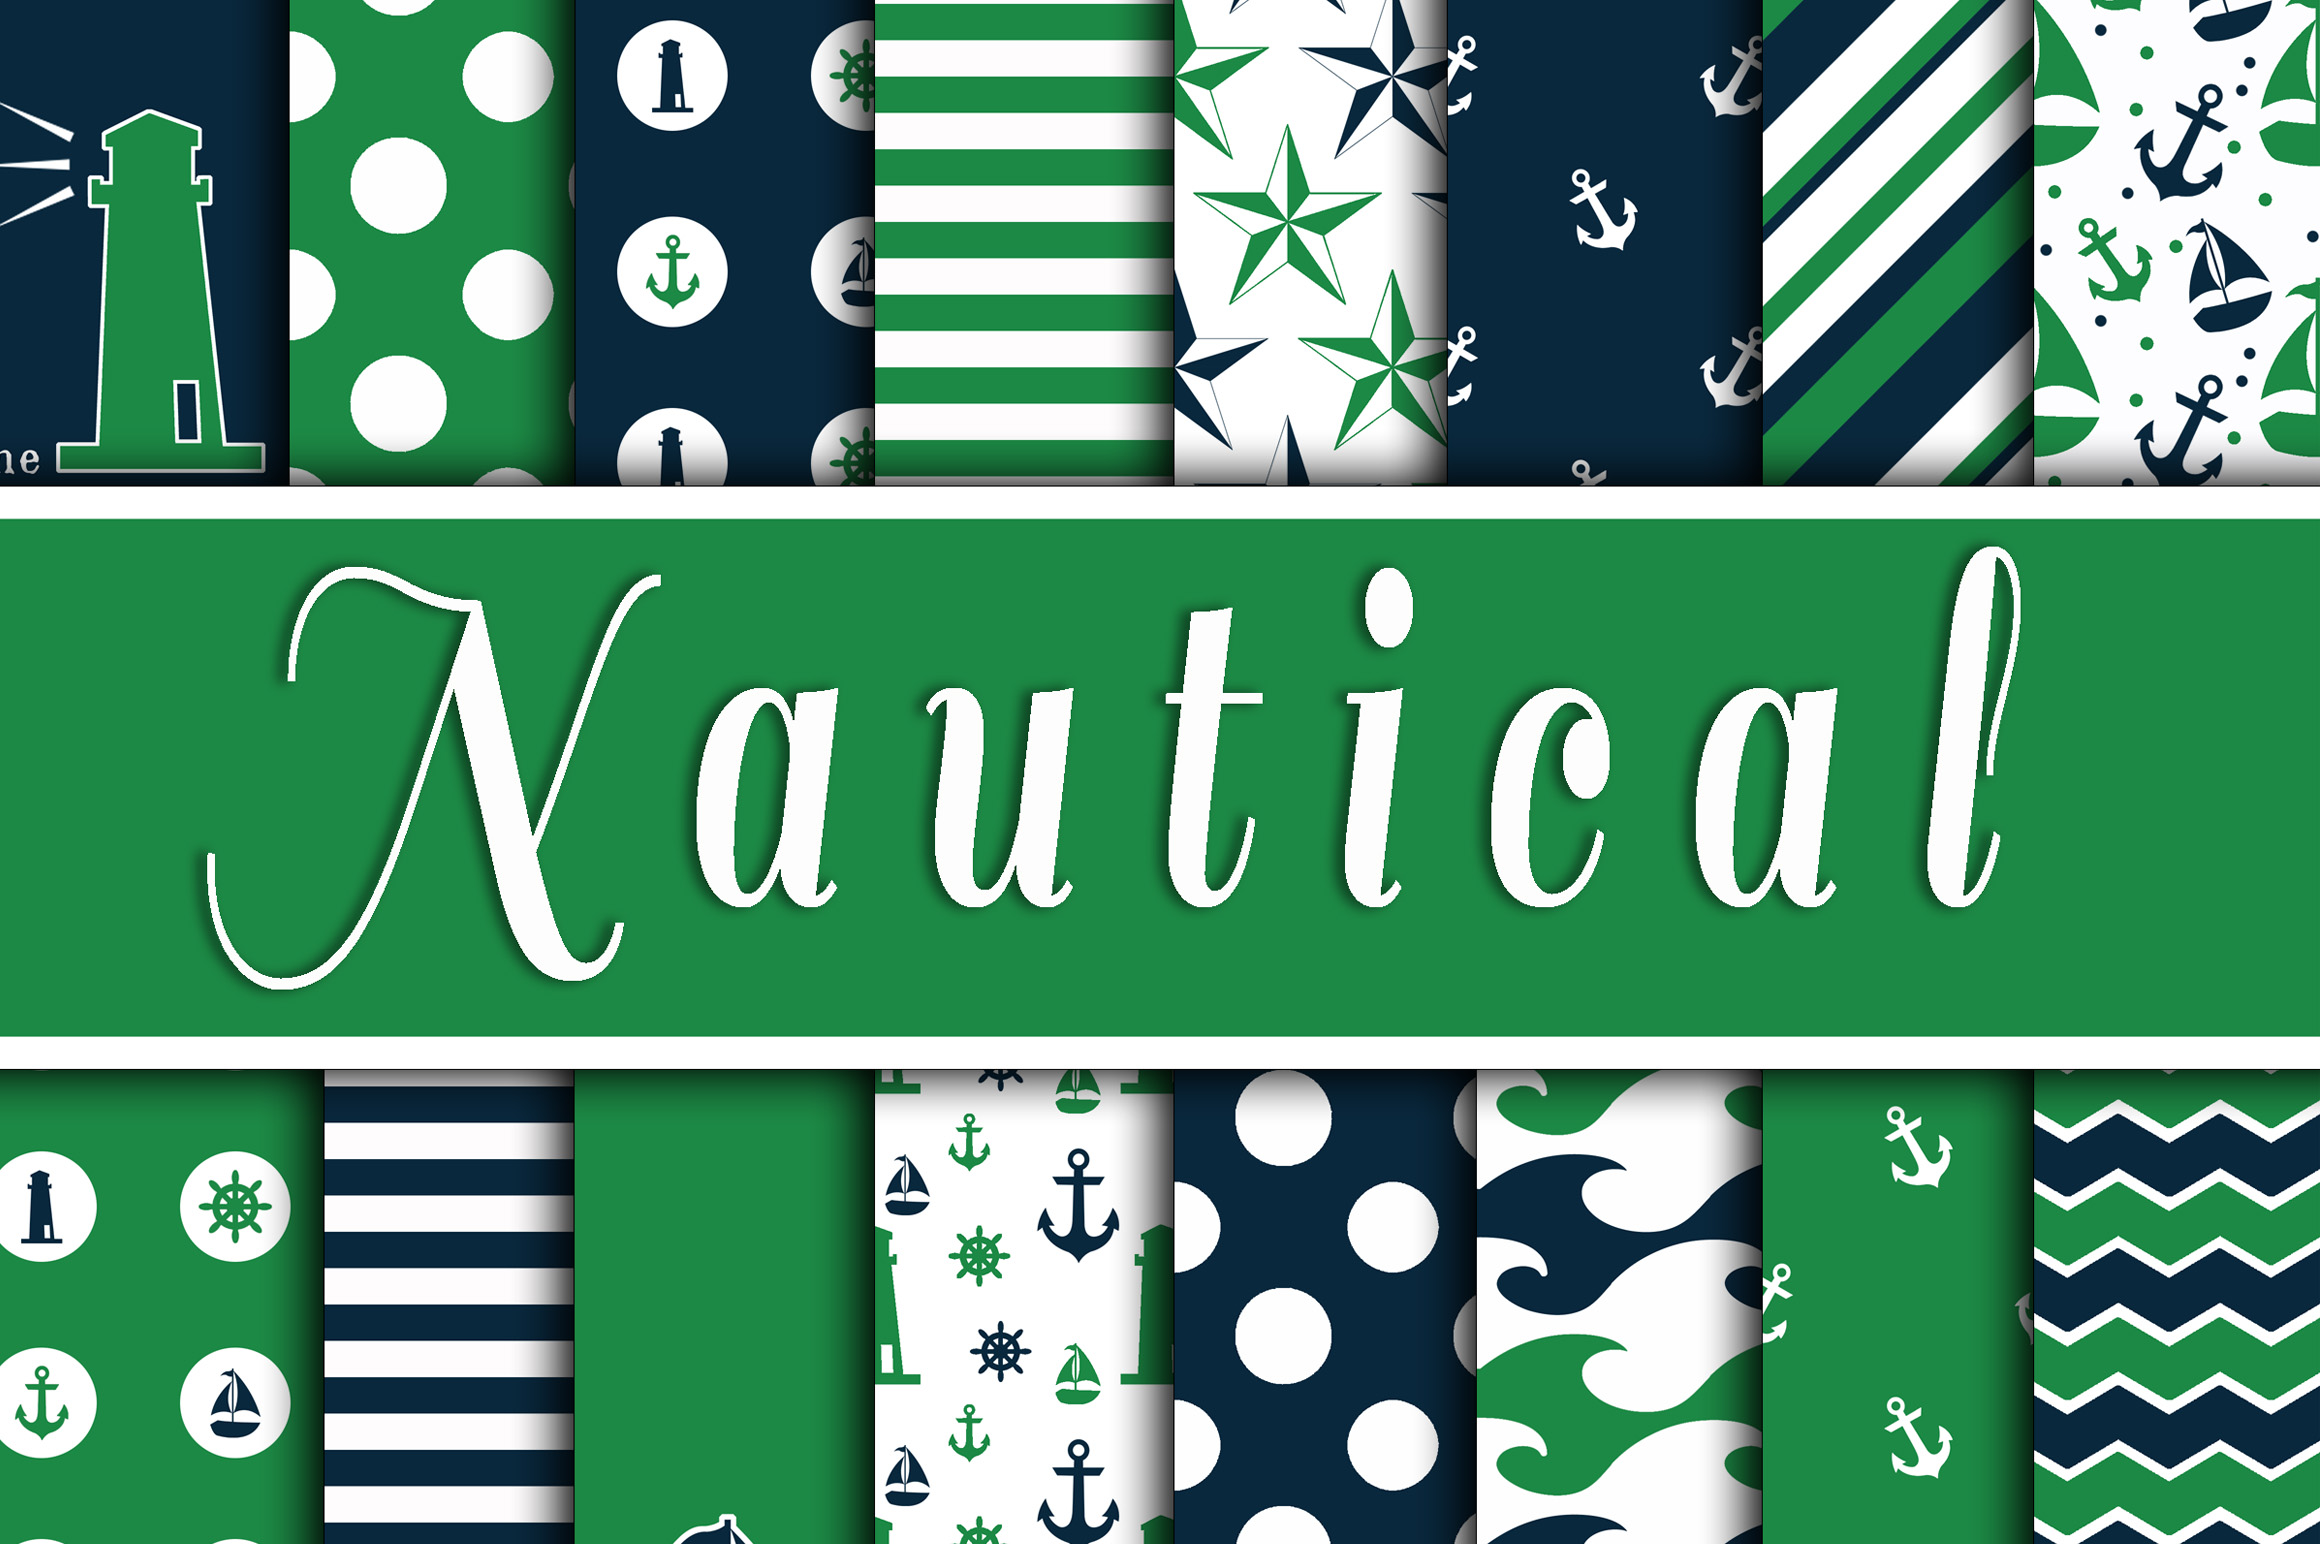 Green and Navy Nautical Designs Digital Paper Graphic Backgrounds By oldmarketdesigns - Image 1